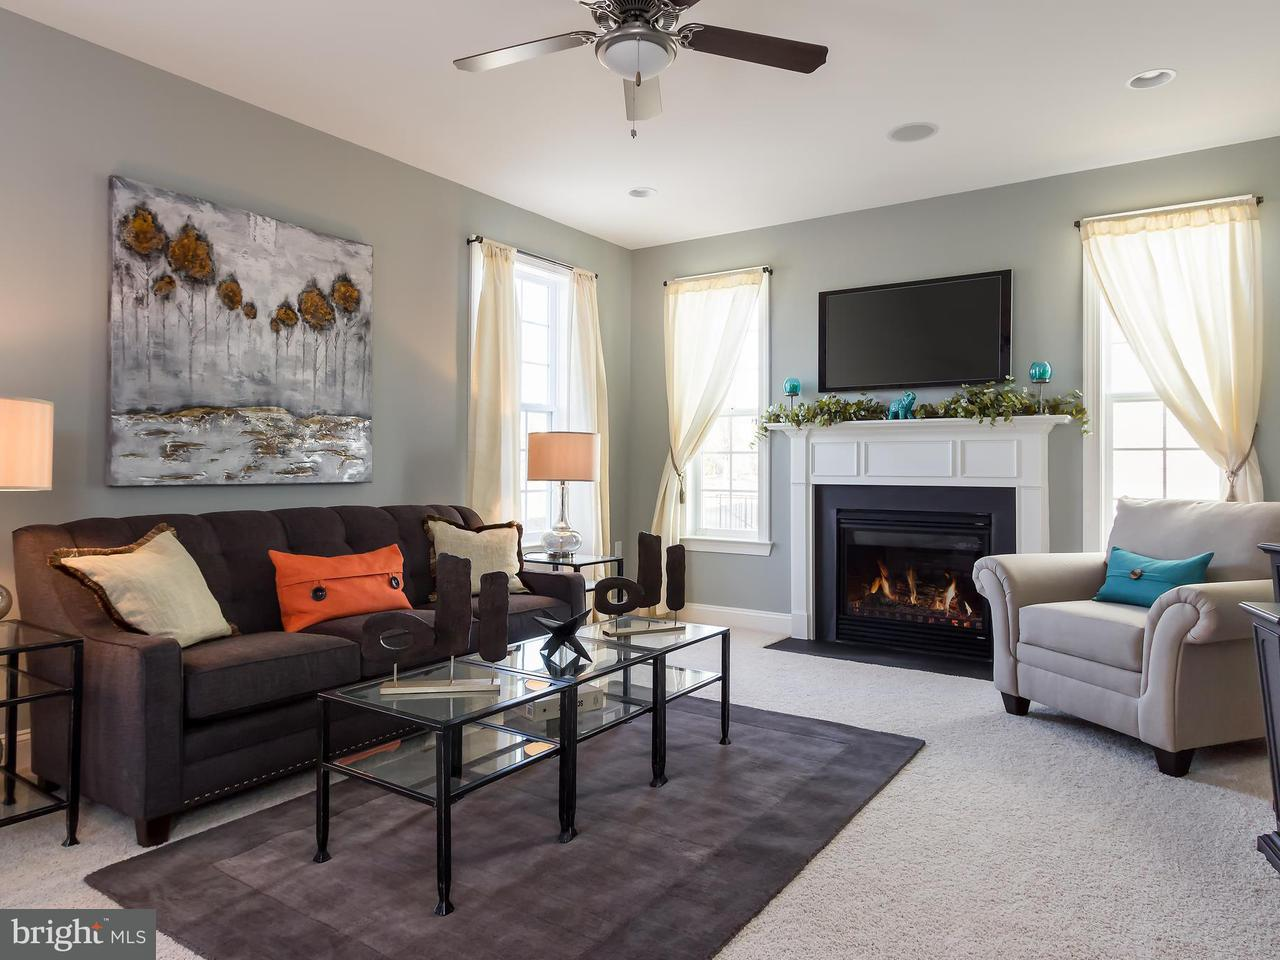 Additional photo for property listing at 0 Five Forks Dr #nottingham Ii Plan  Harpers Ferry, West Virginia 25425 United States